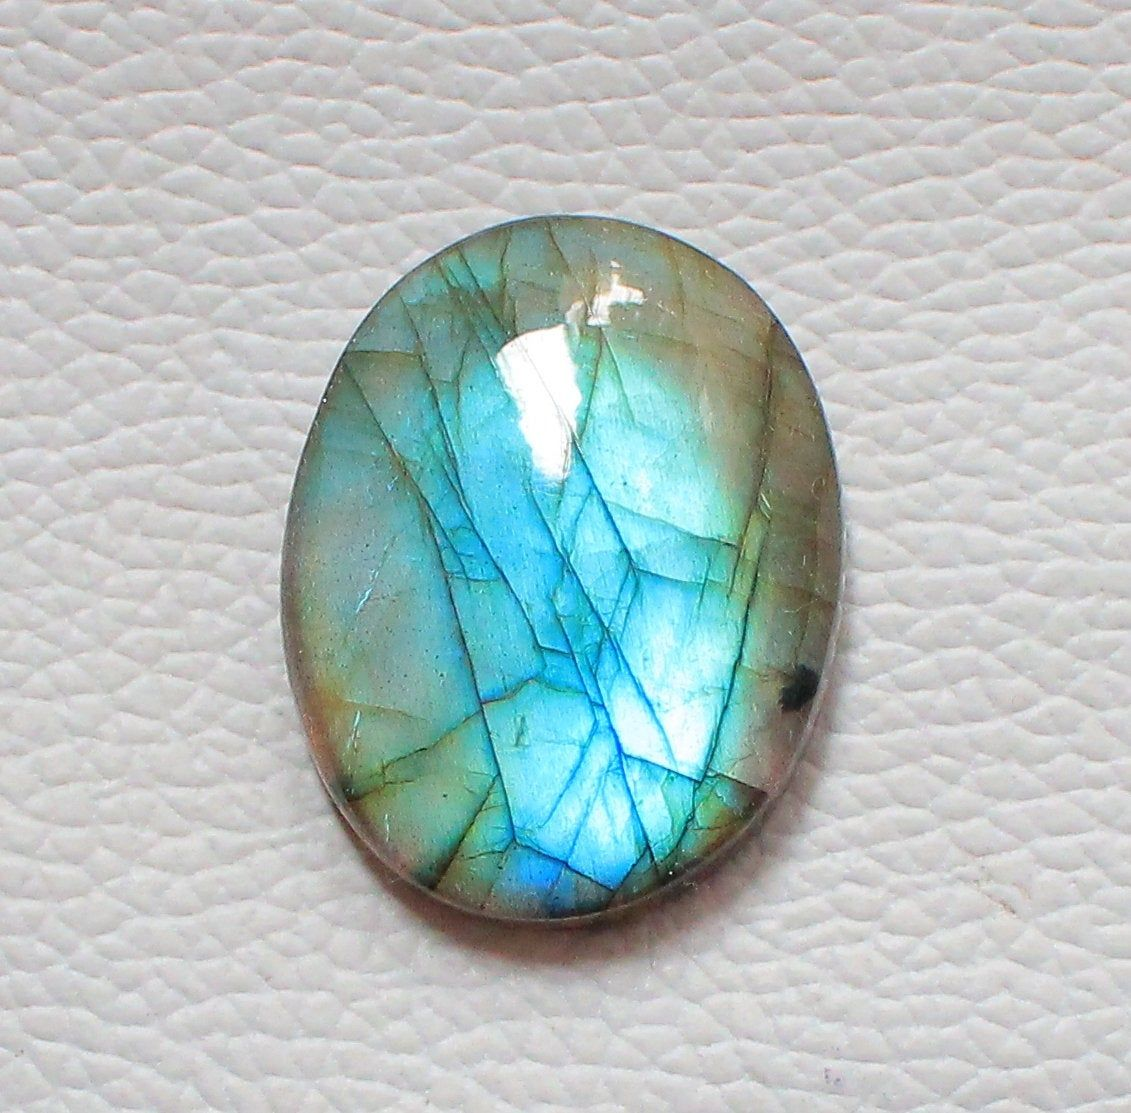 Labradorite Cabochon Loose Gemstone 48.70 Cts Oval Shape Best For Silver AAA Quality Multi Fire Labradorite Wire Wrap Jewellery